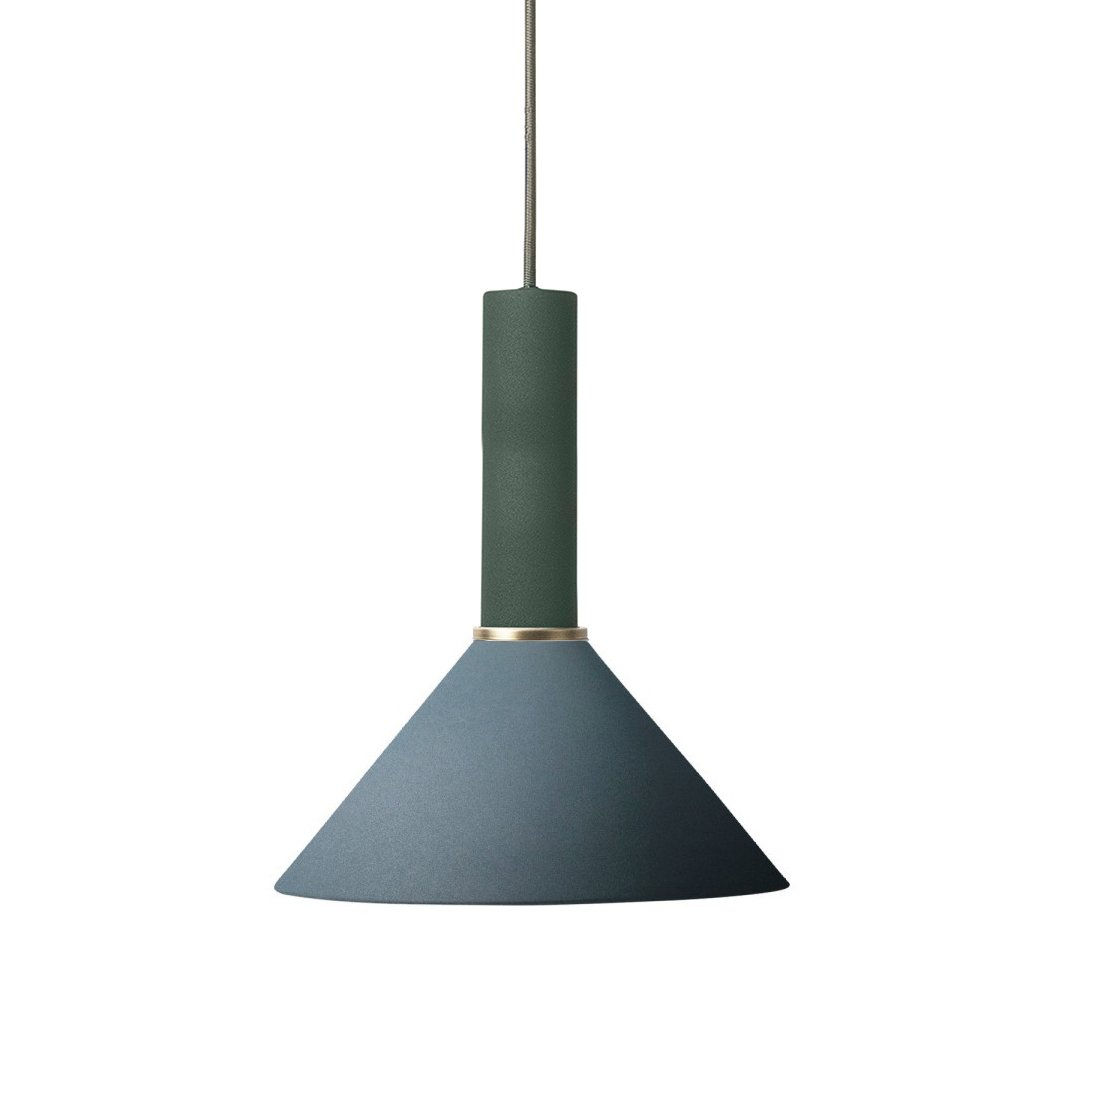 Ferm Living Collect Cone High Hanglamp Donkergroen Donkerblauw